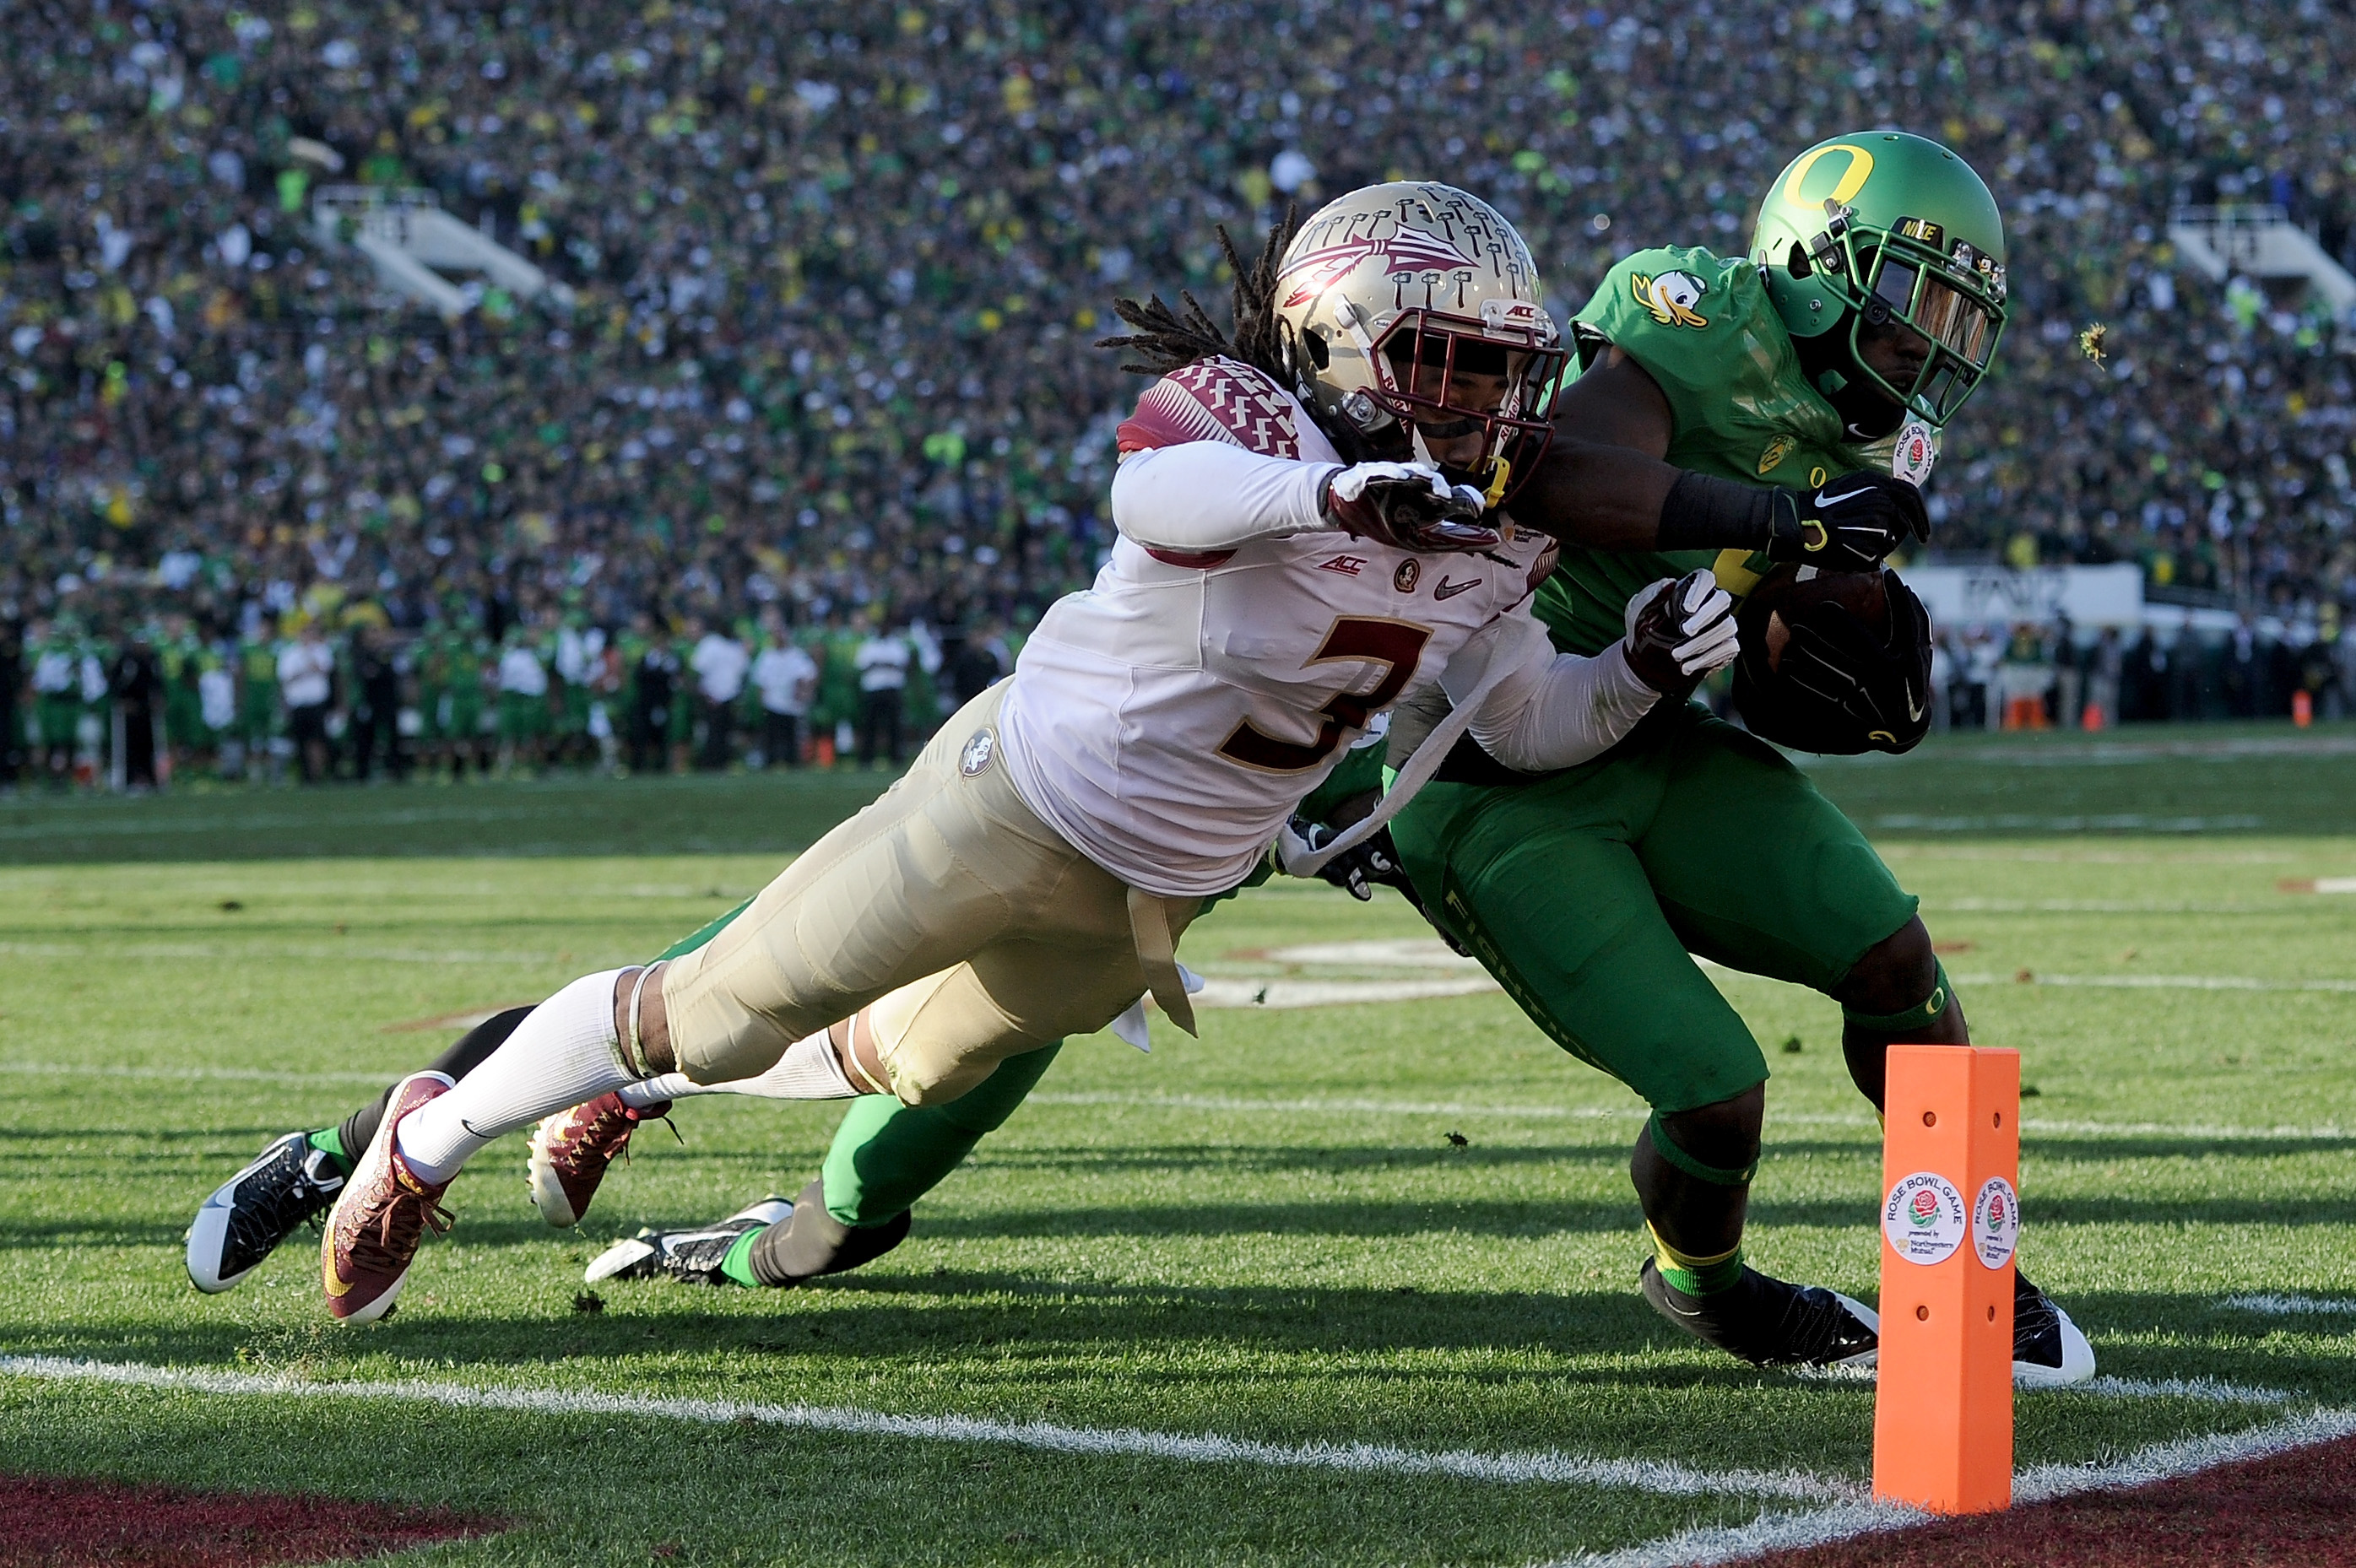 Running back Byron Marshall of the Oregon Ducks is hit out of bounds at the one-yard line by cornerback Ronald Darby of the Florida State Seminoles during the College Football Playoff Semifinal at the Rose Bowl Game at the Rose Bowl on Jan. 1, 2015.  (Getty Images)